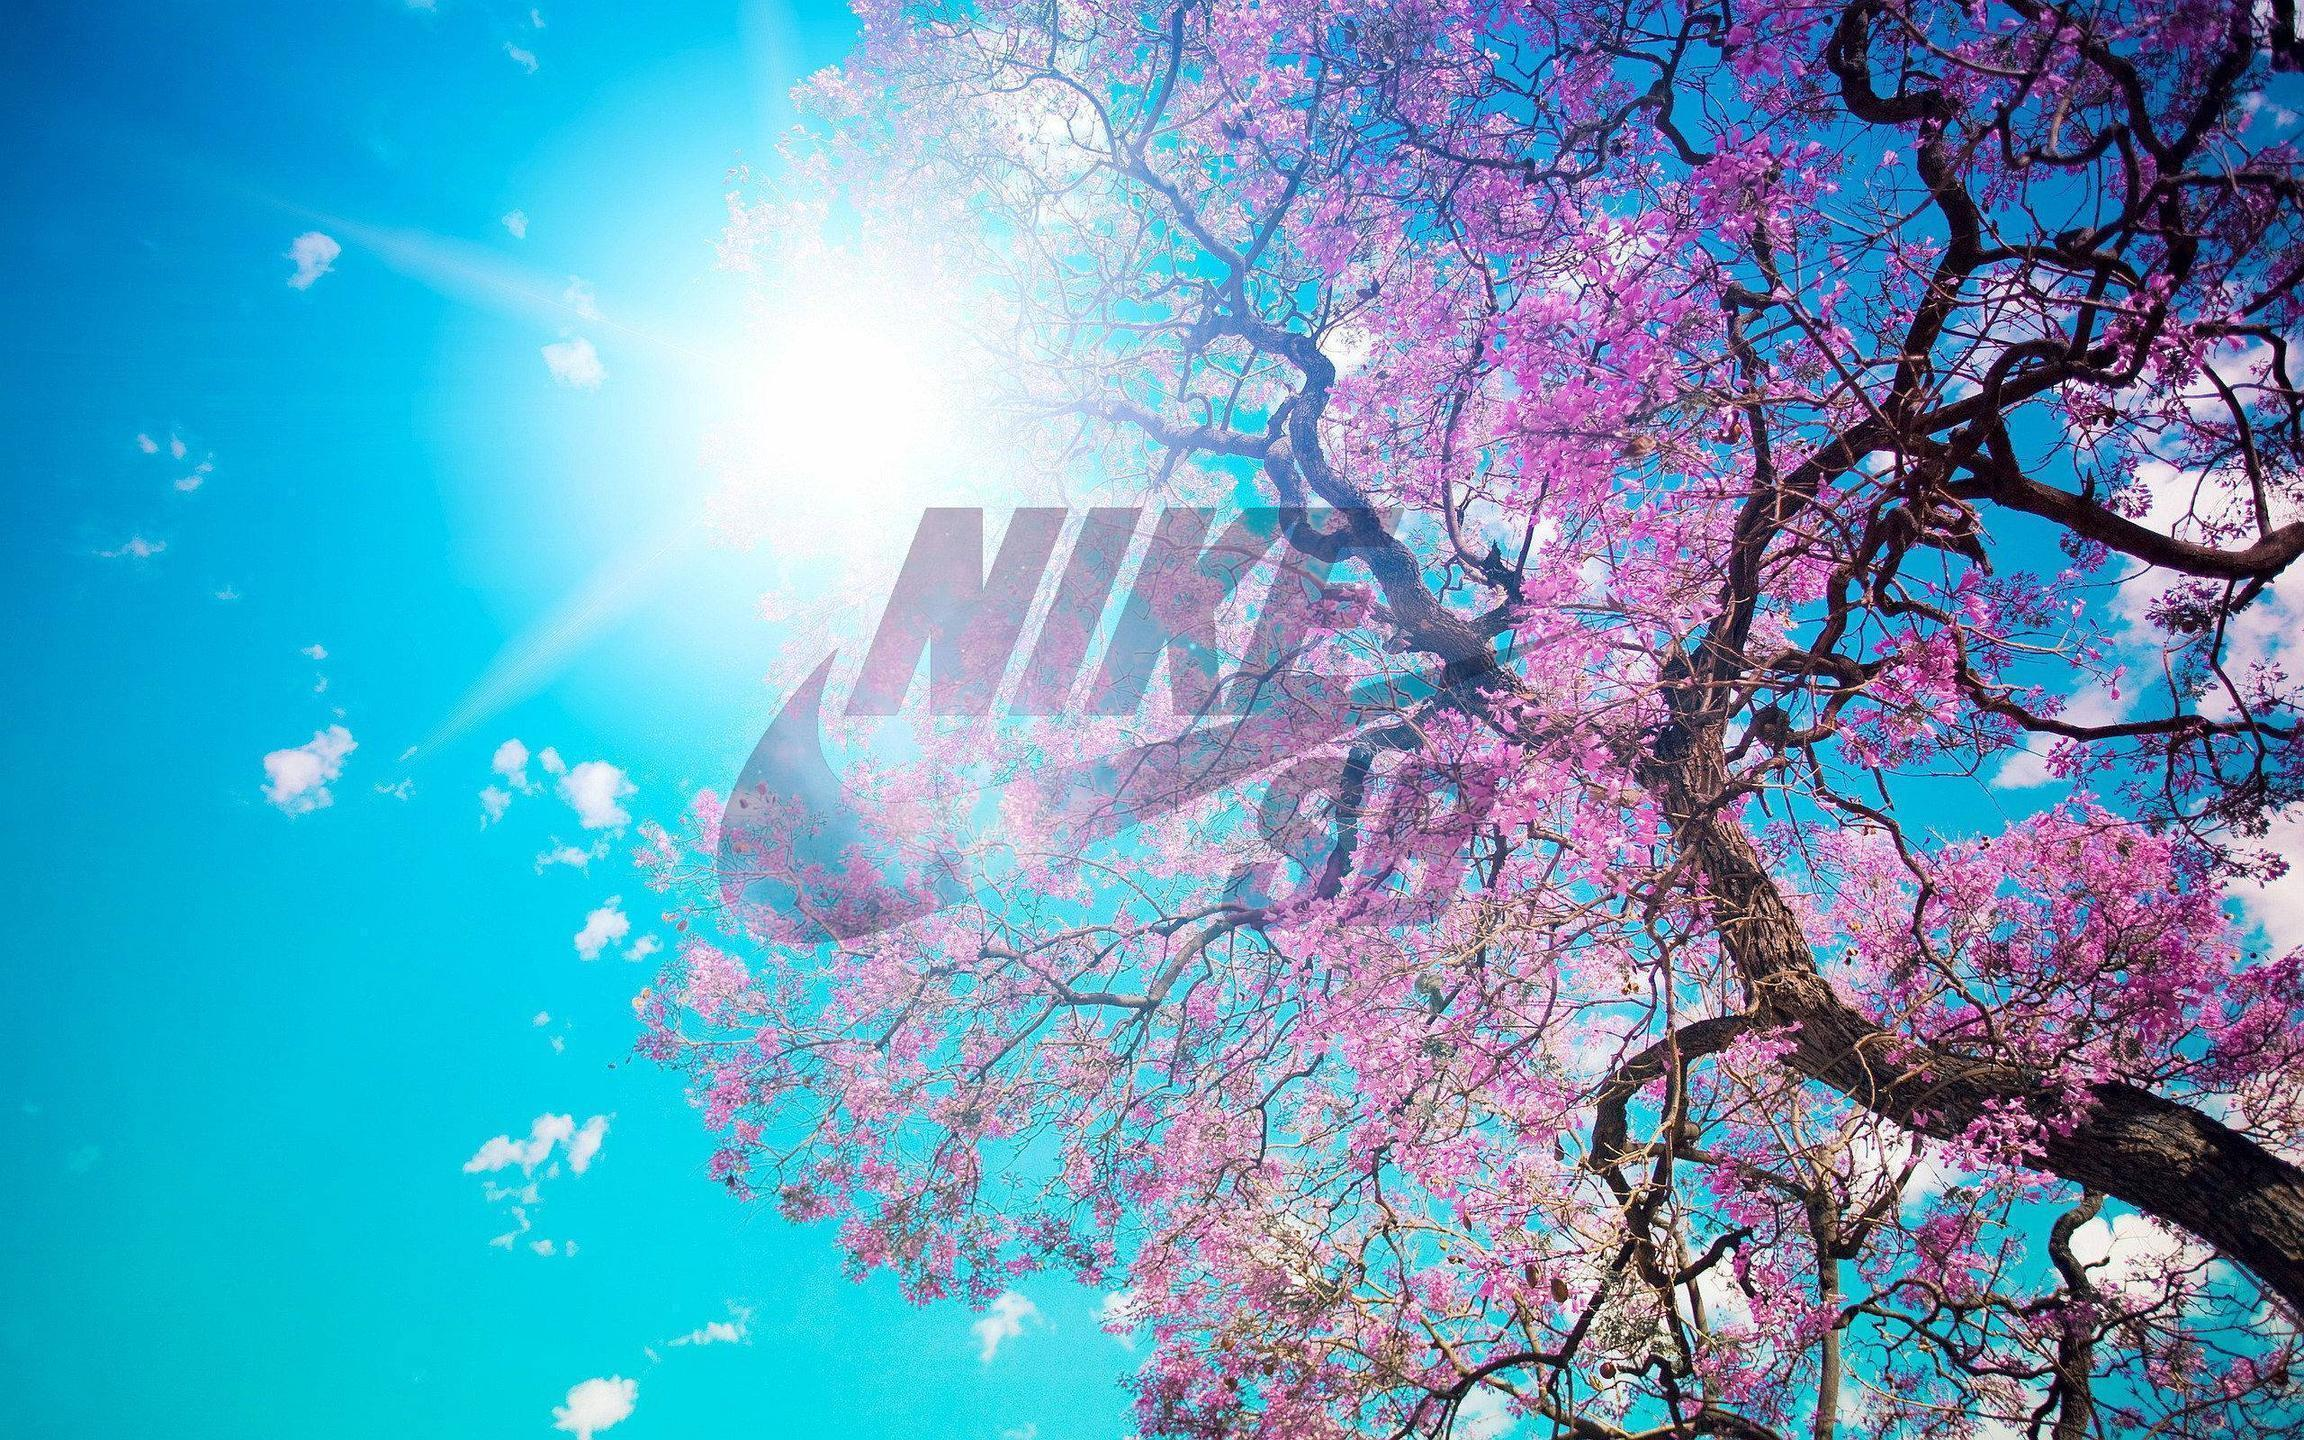 Nike Laptop Wallpaper Tumblr: Nike SB Logo Wallpapers